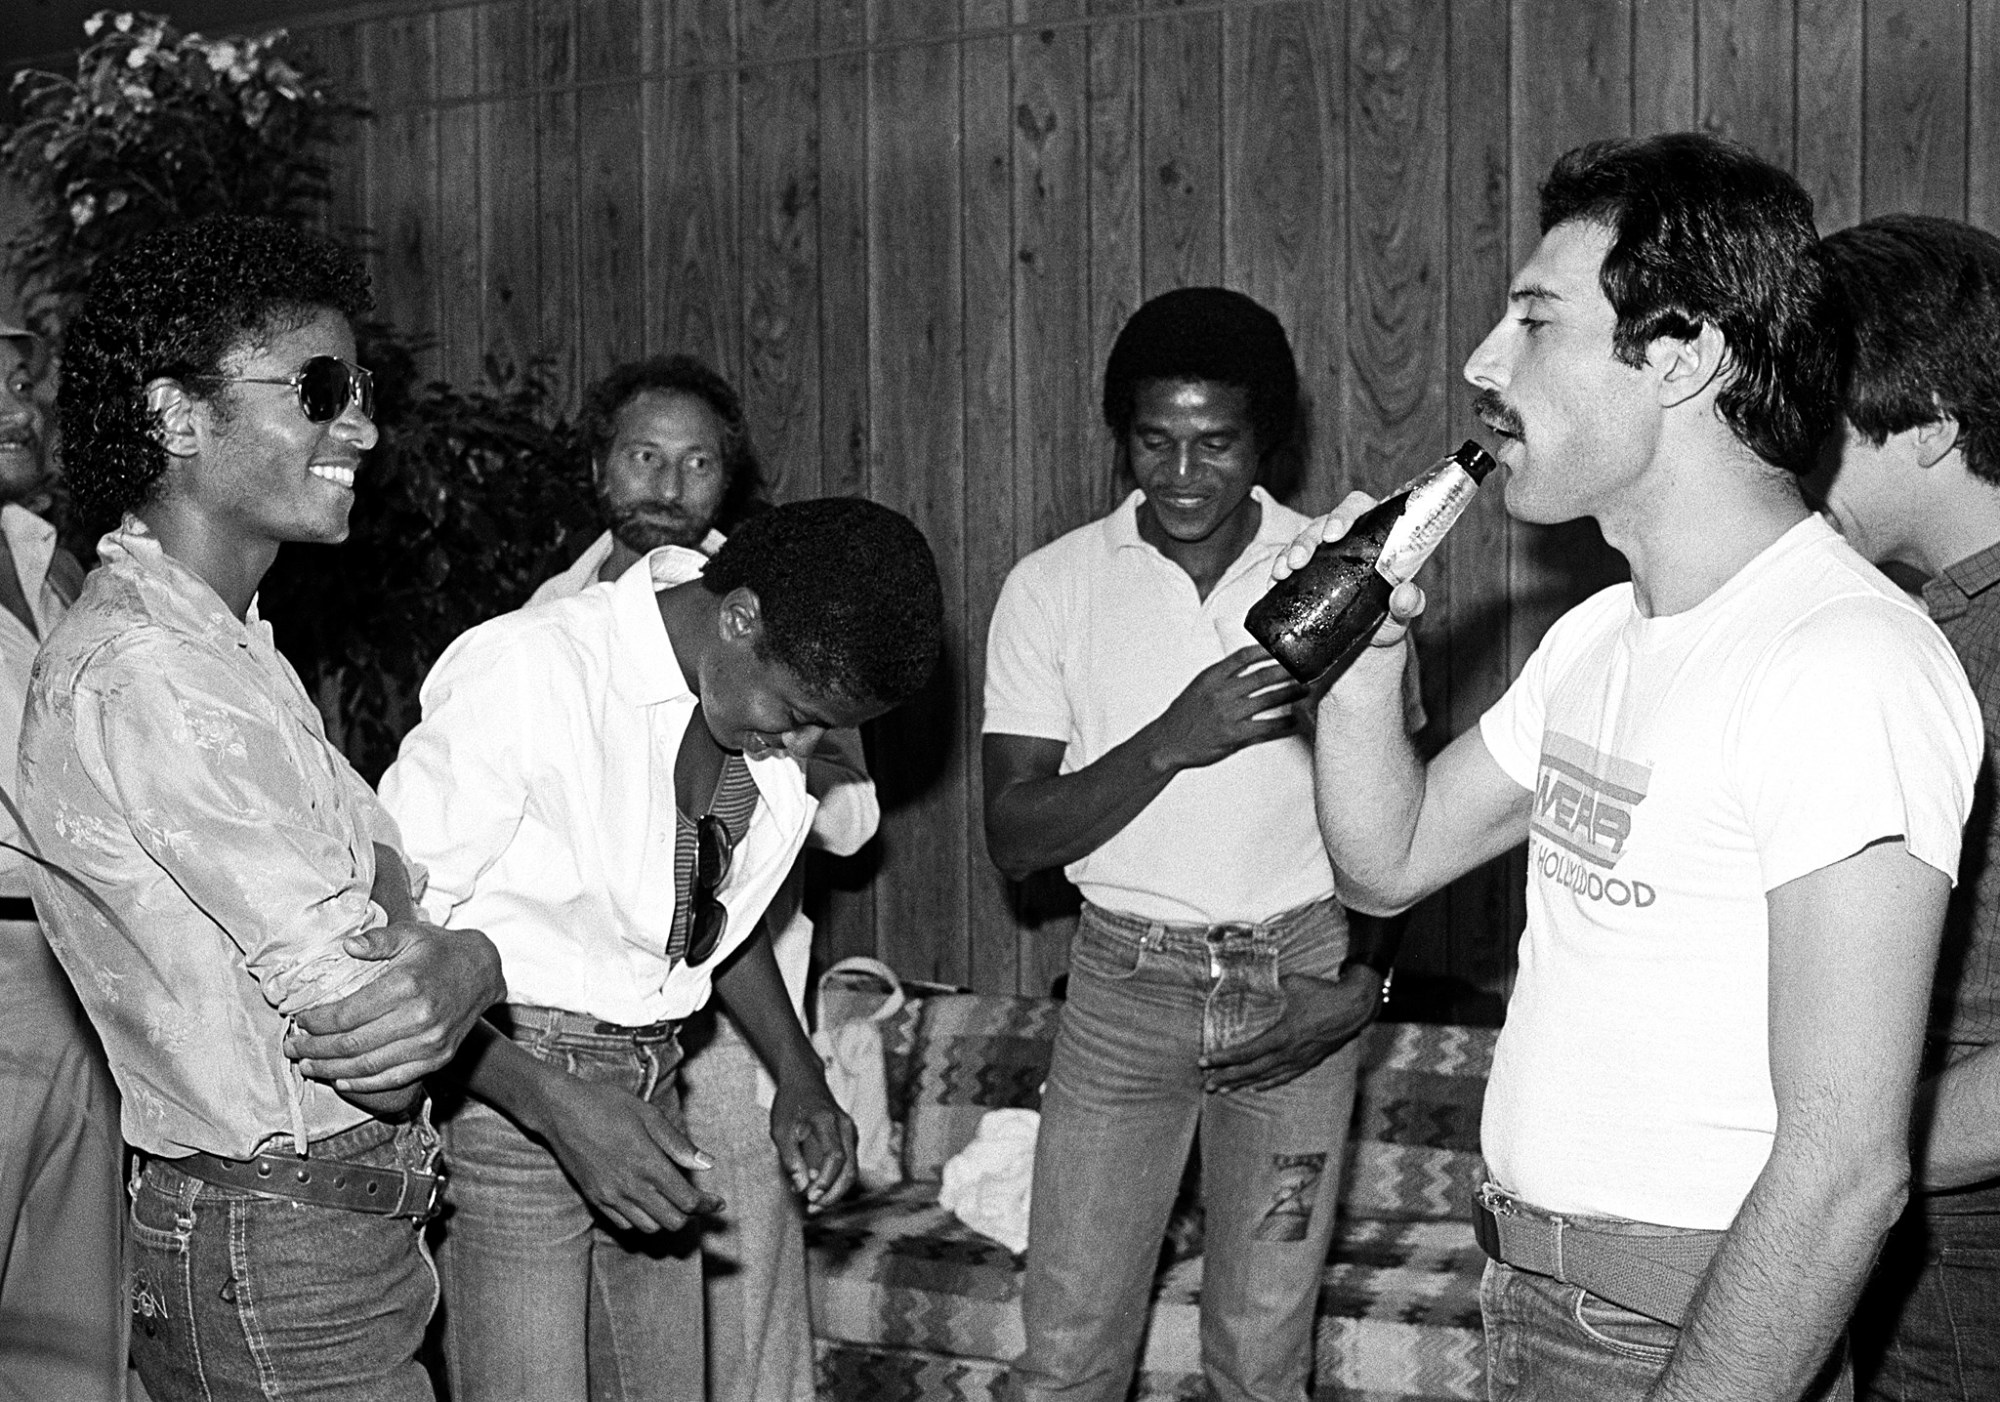 queen-with-michael-jackson-in-1980